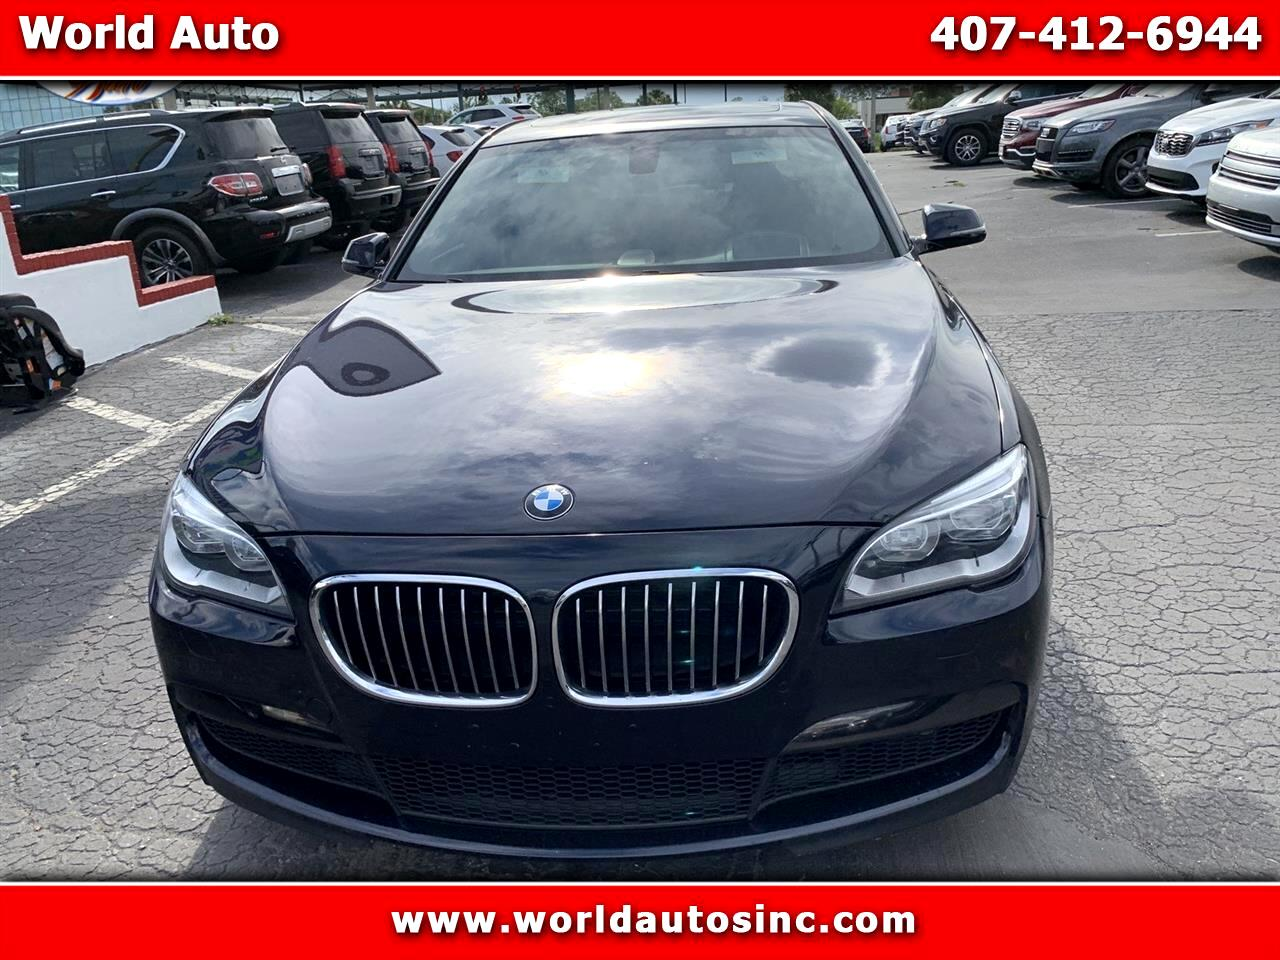 2013 BMW 750i M Package